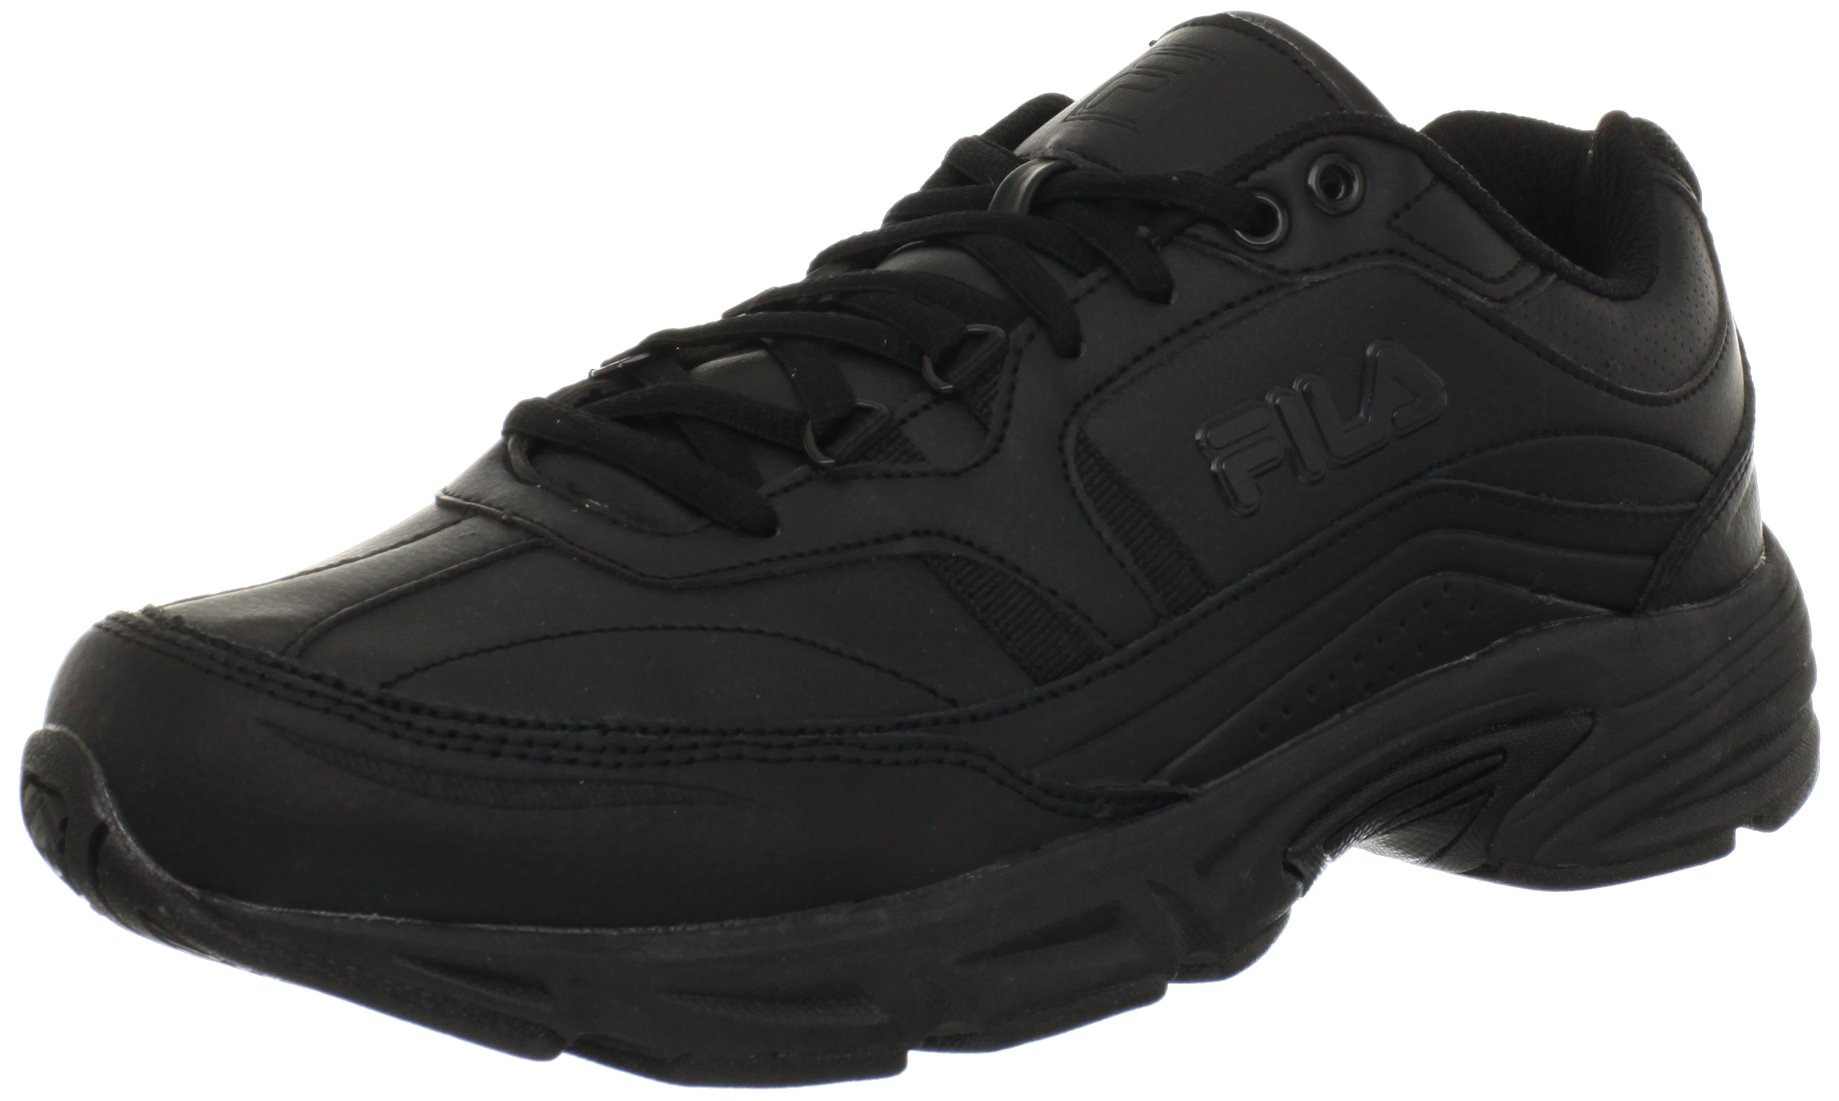 Fila Men's Memory Workshift Cross-Training Shoe,Black/Black/Black,11 4E US by Fila